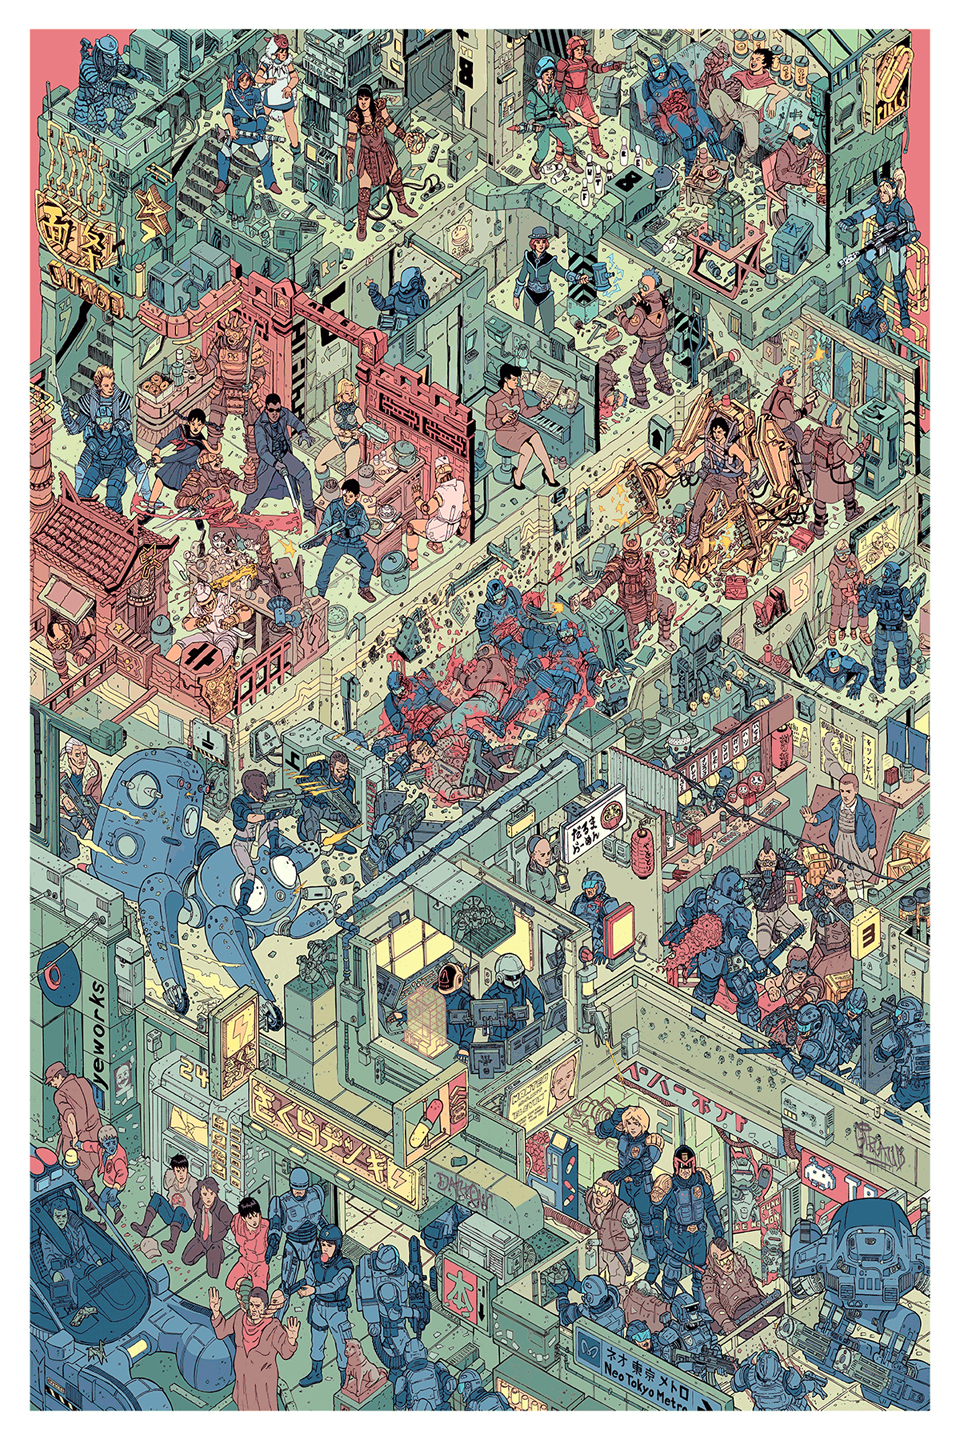 Sci-fi & Fantasy Characters Congregate in The Raid Print